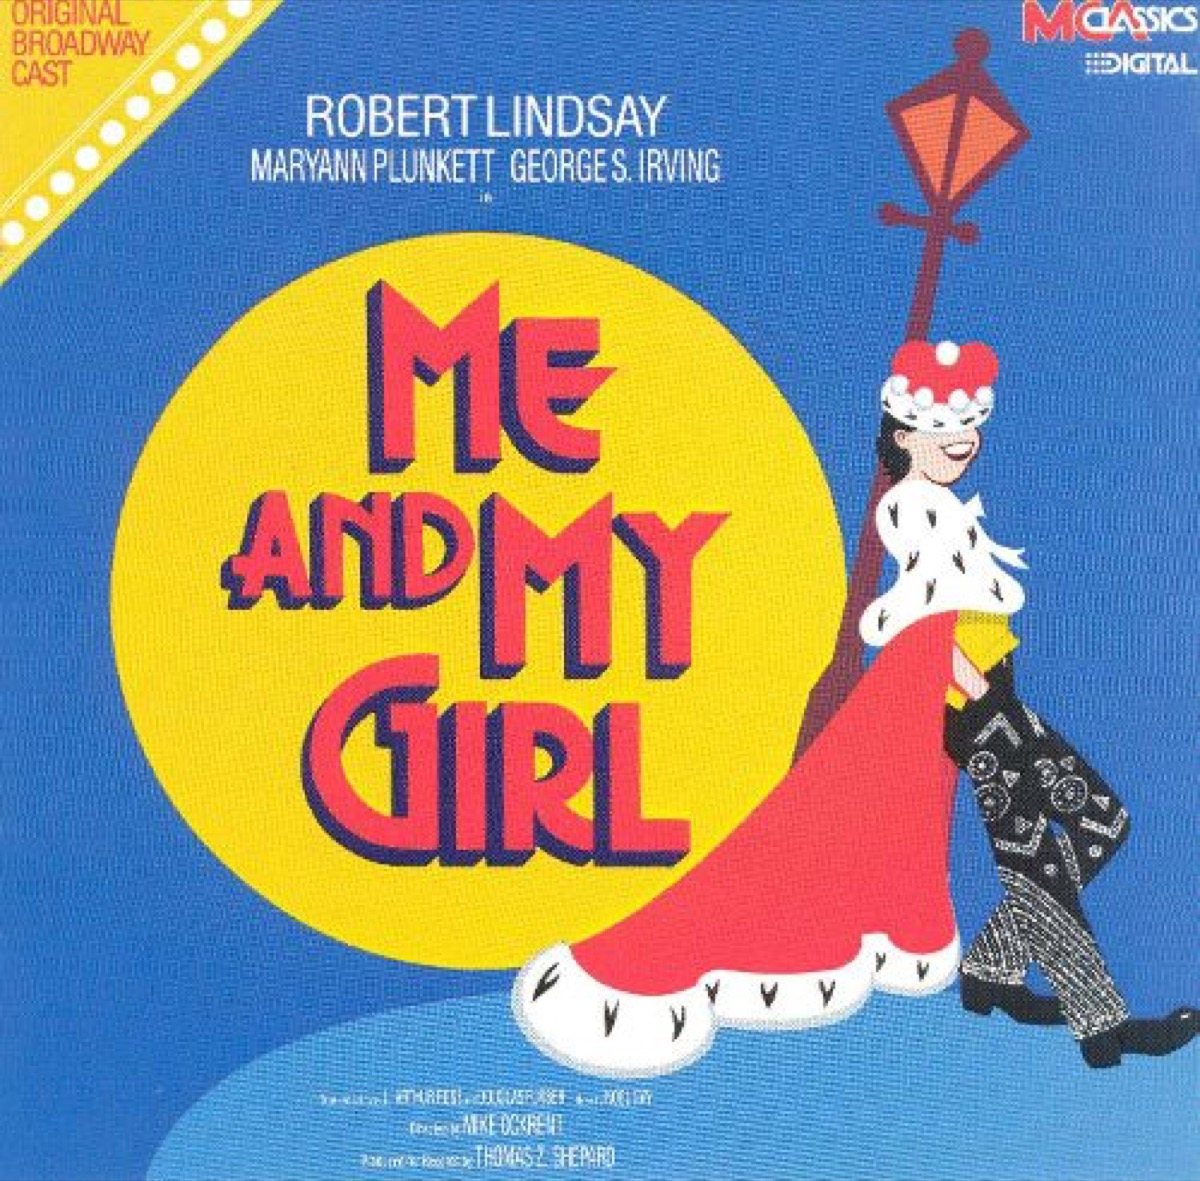 me and my girl on broadway original recording, broadway tickets